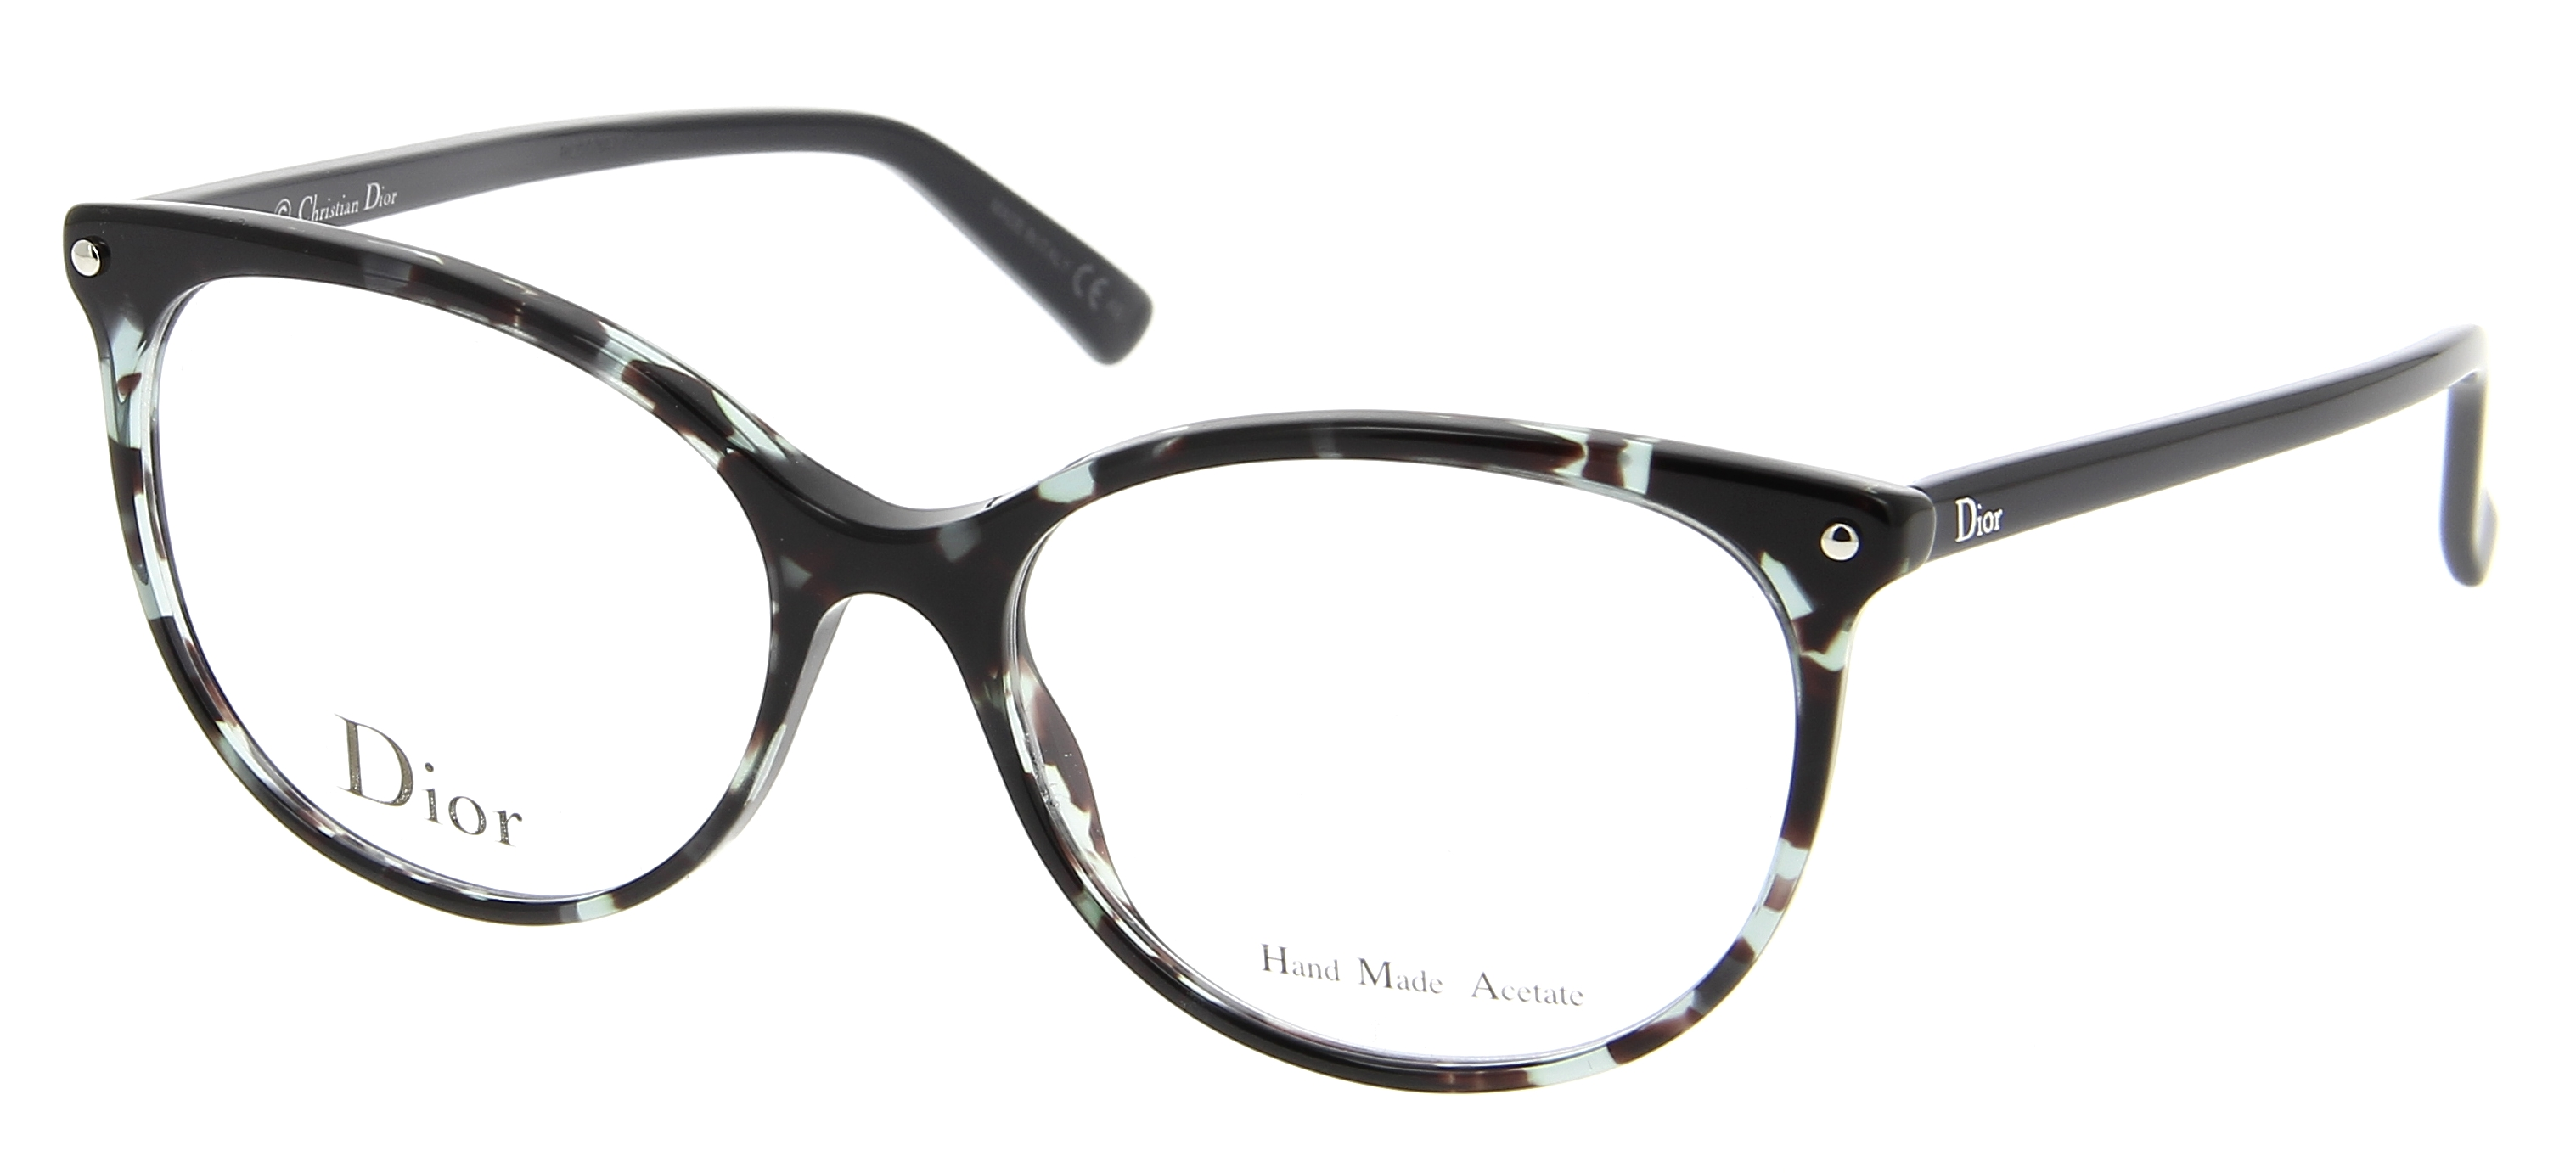 Ray Ban Krys Lunettes Femme Lunettes Ray yqORw8ttEp aad368896abc